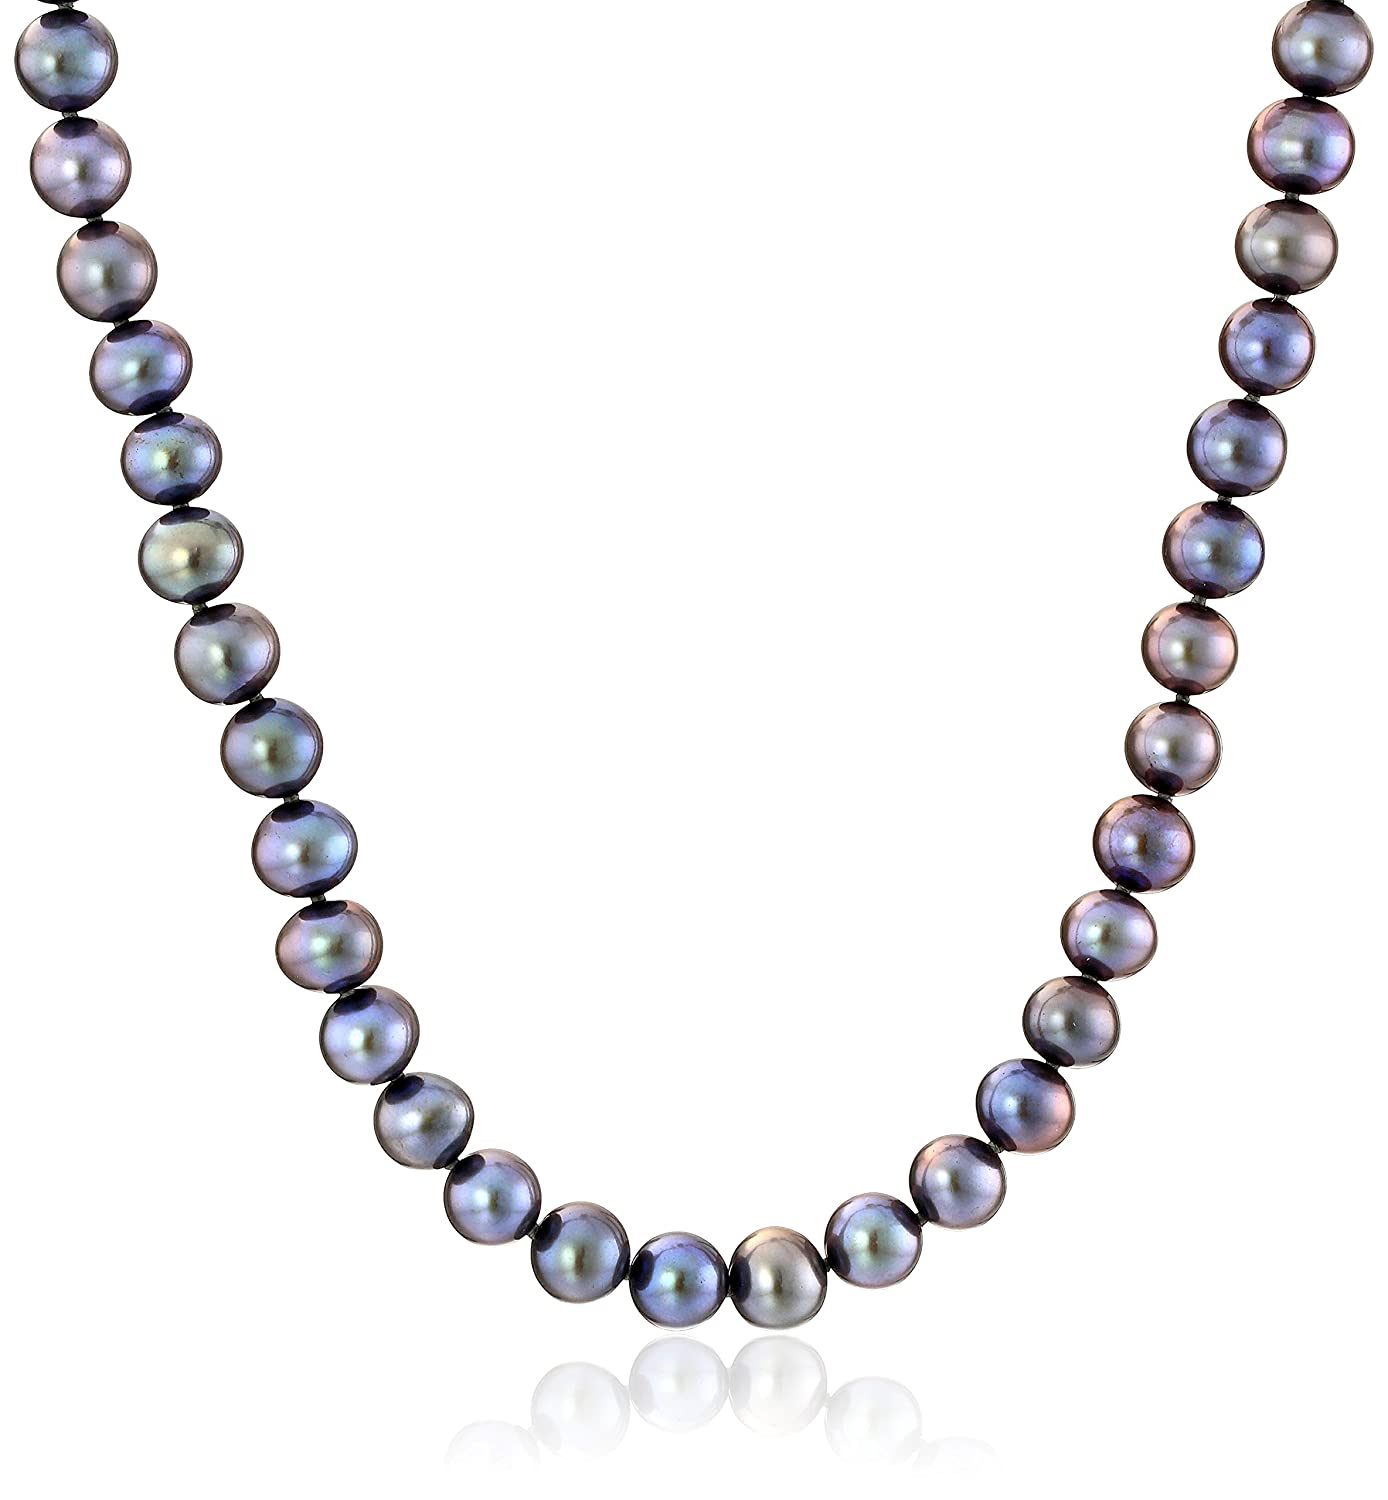 14K Yellow Gold 5mm-6mm Black Freshwater Cultured AA Quality Pearl Strand Necklace 16 Amazon Collection LN6198BLYG16